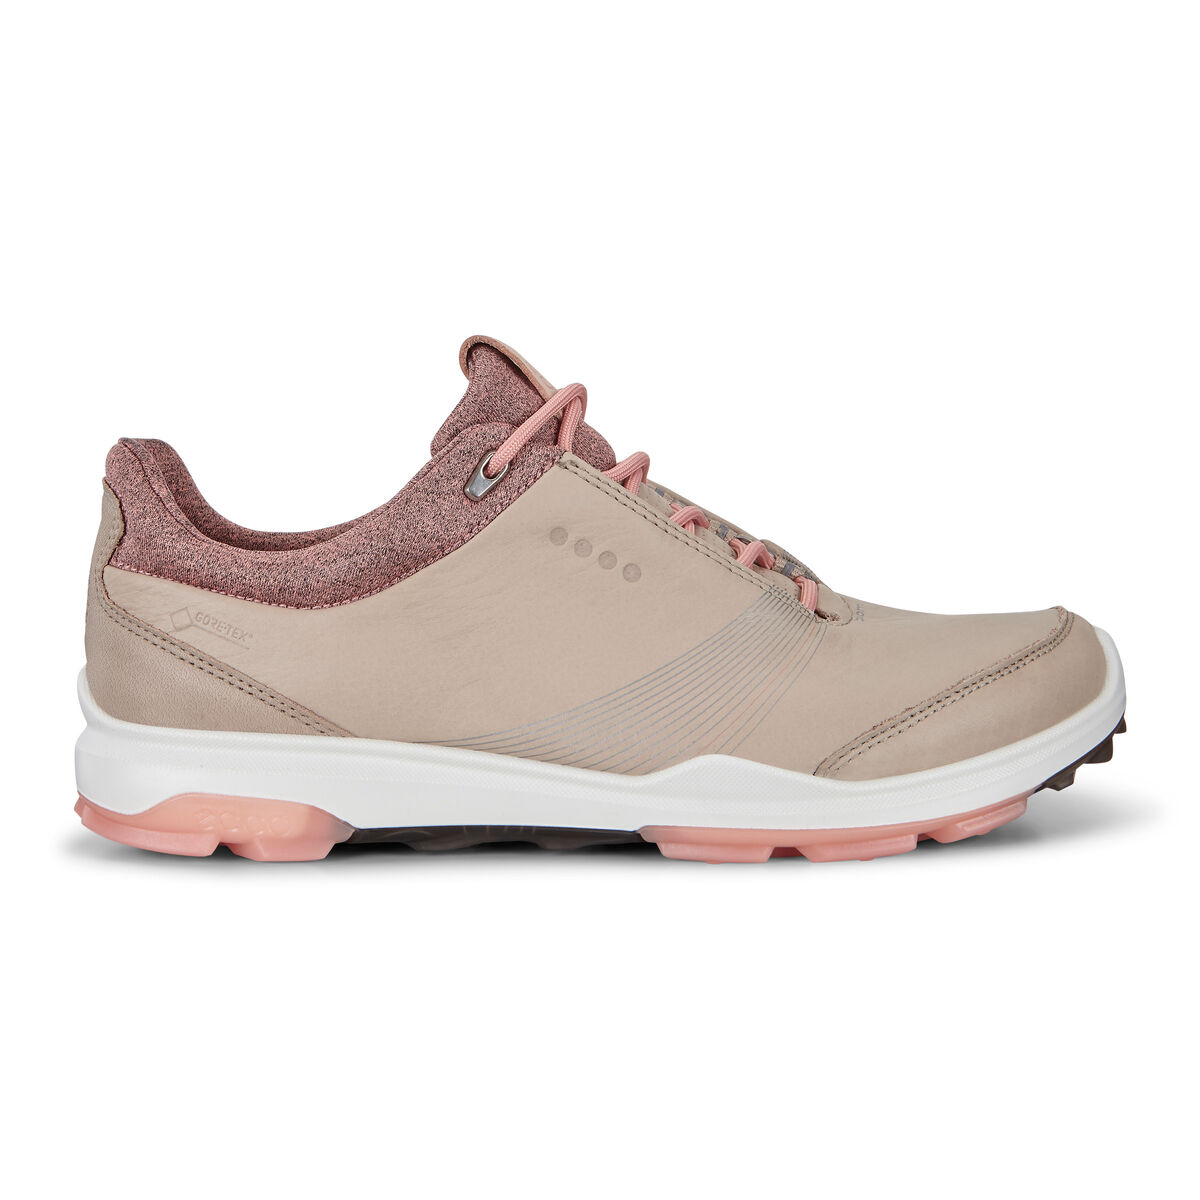 00ff522ec57d ECCO BIOM Hybrid 3 GTX Women s Golf Shoe - Tan